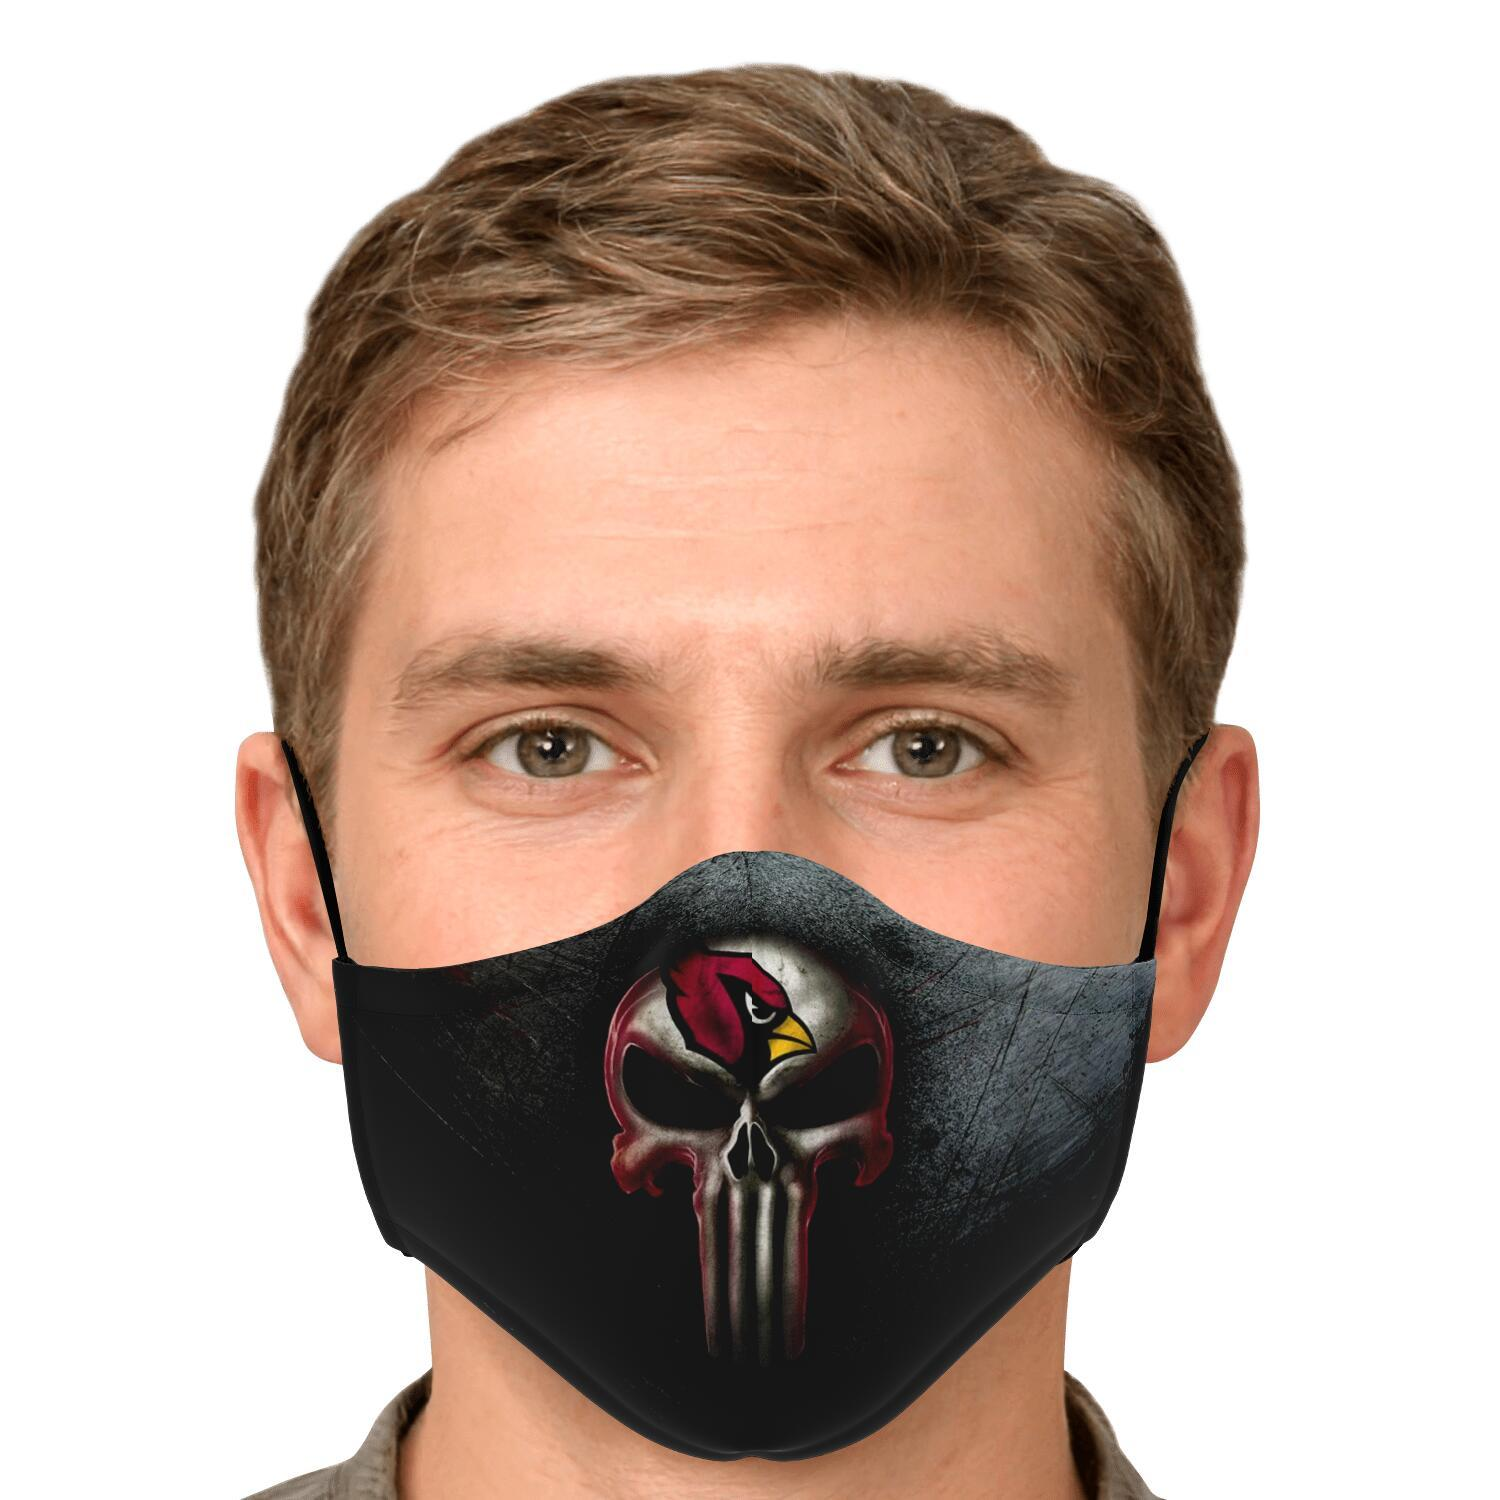 Arizona Cardinals The Punisher Mashup Face Mask 4